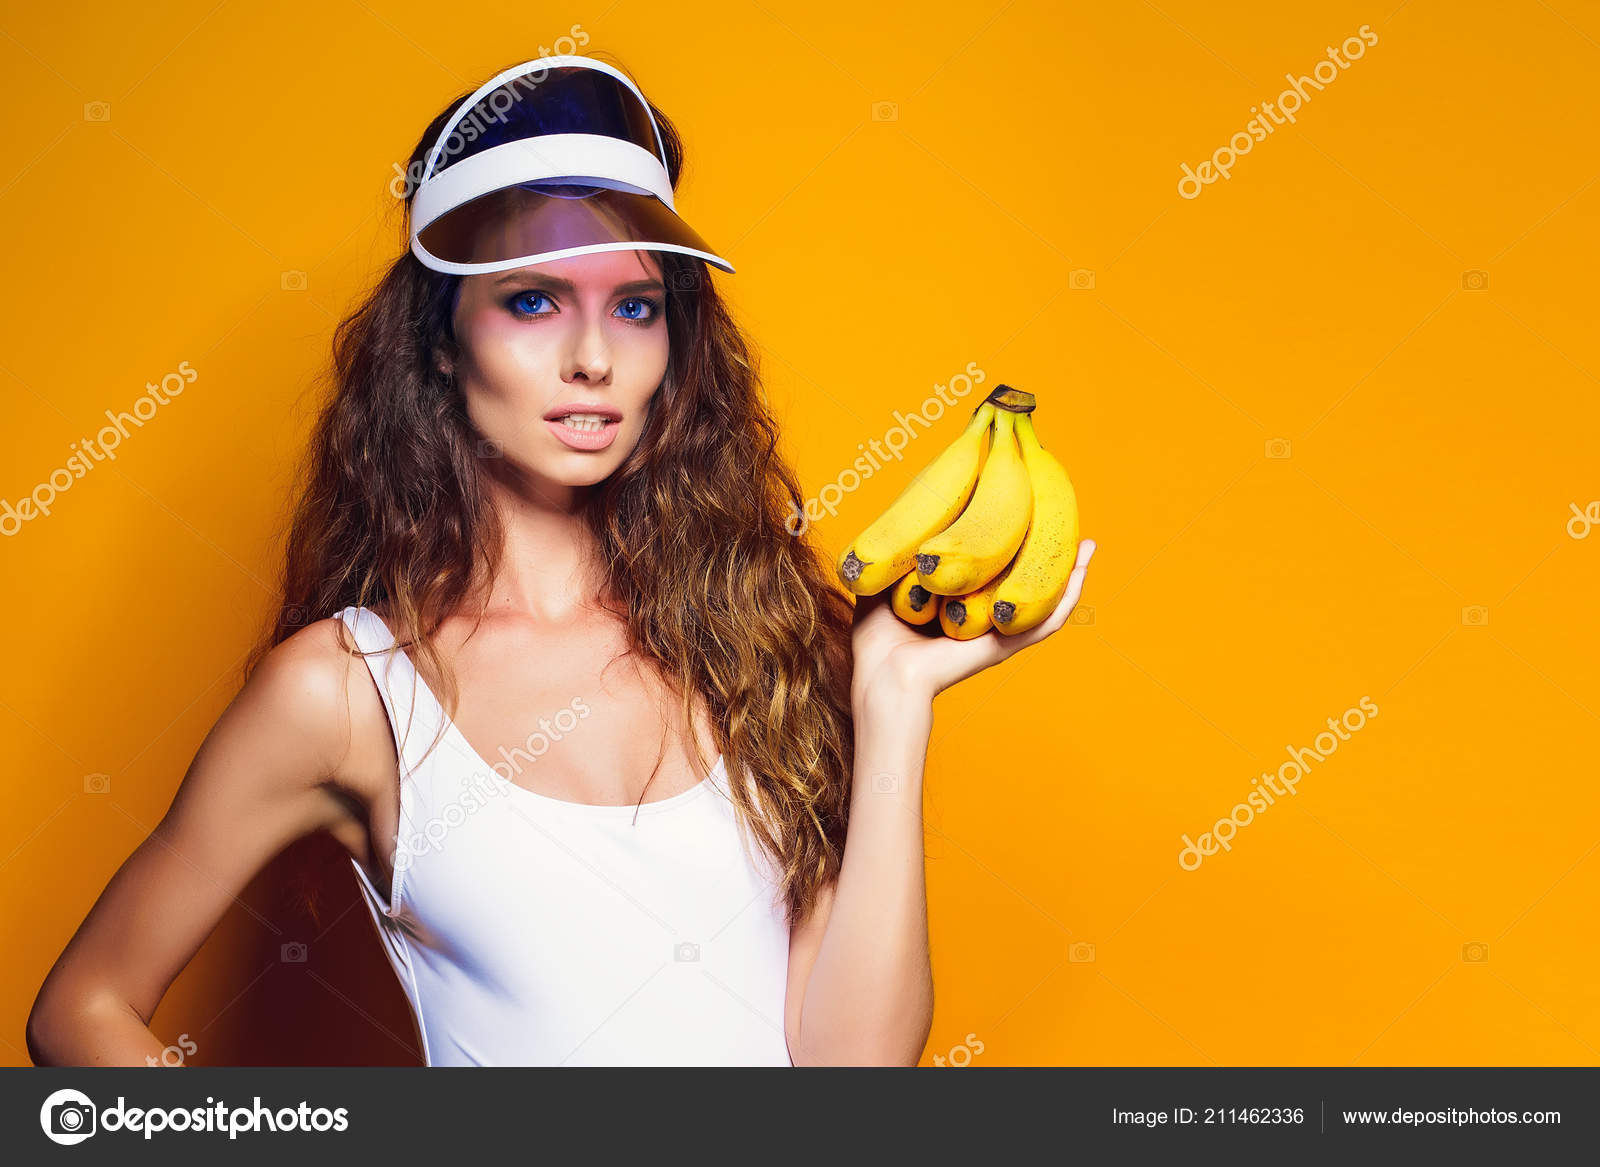 e6f5bd7cc21b8 Woman in swimsuit and blue shorts holding banana and posing isolated over  yellow background — Stock